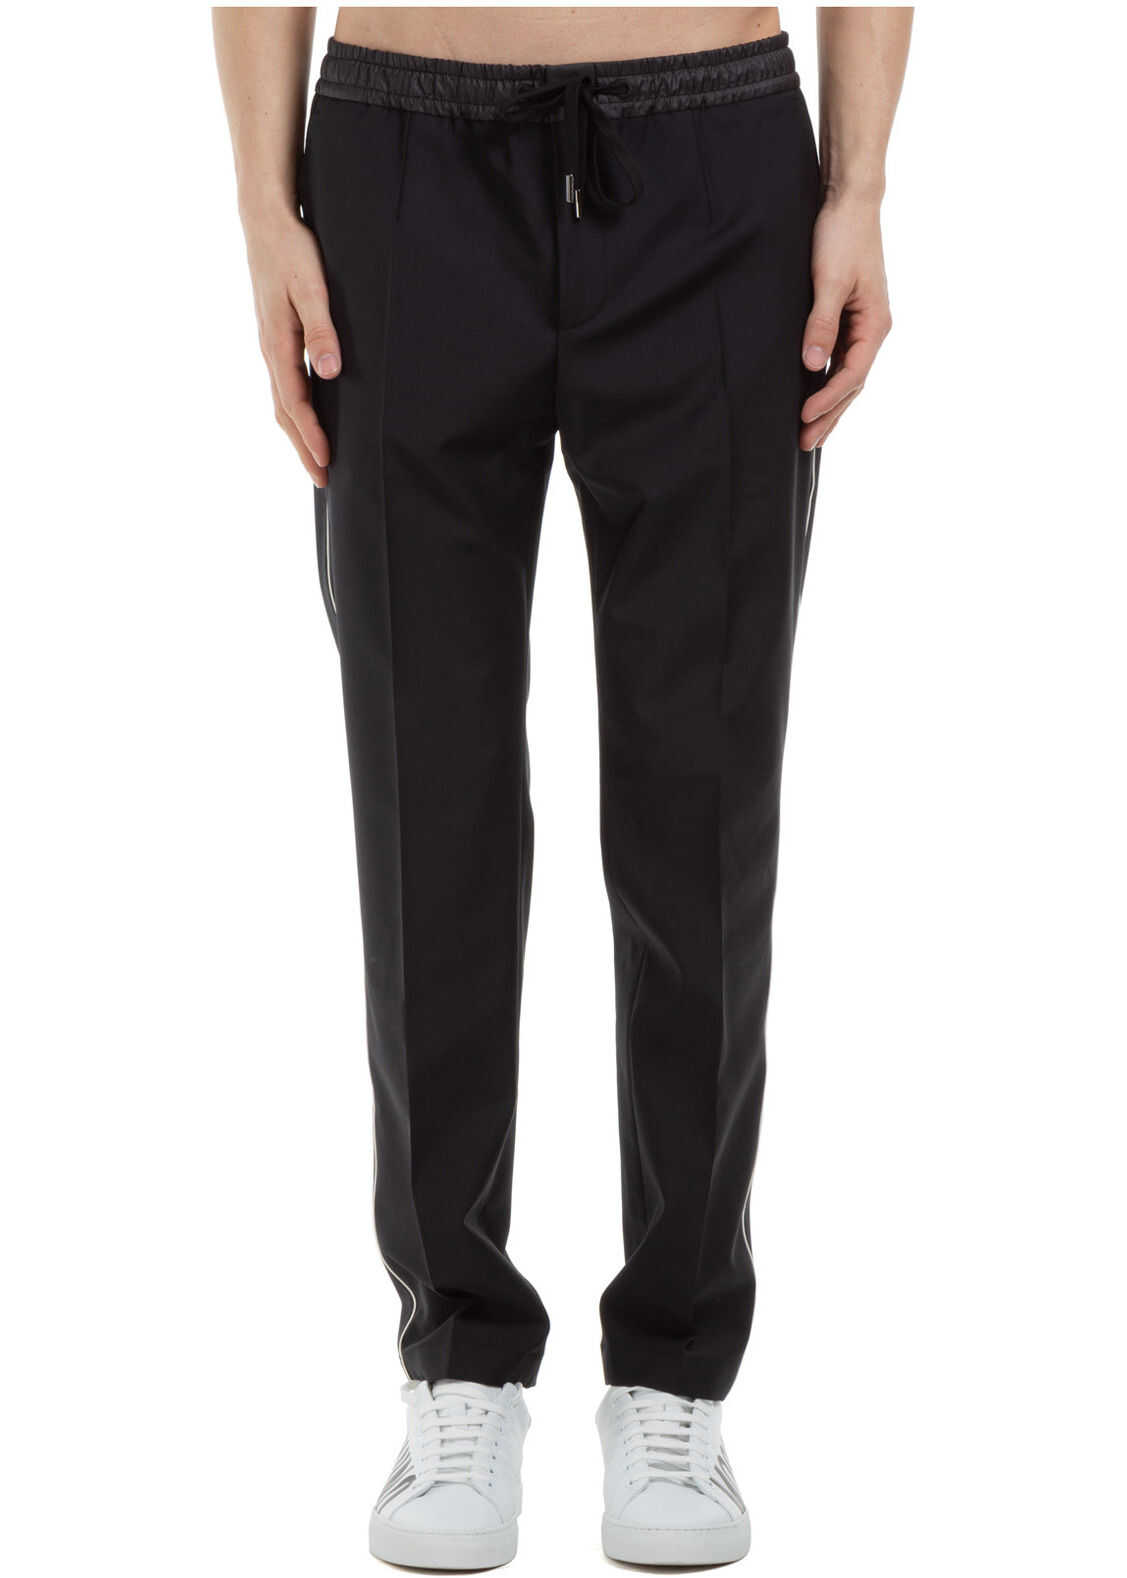 Dolce & Gabbana Tracksuit Trousers Black imagine